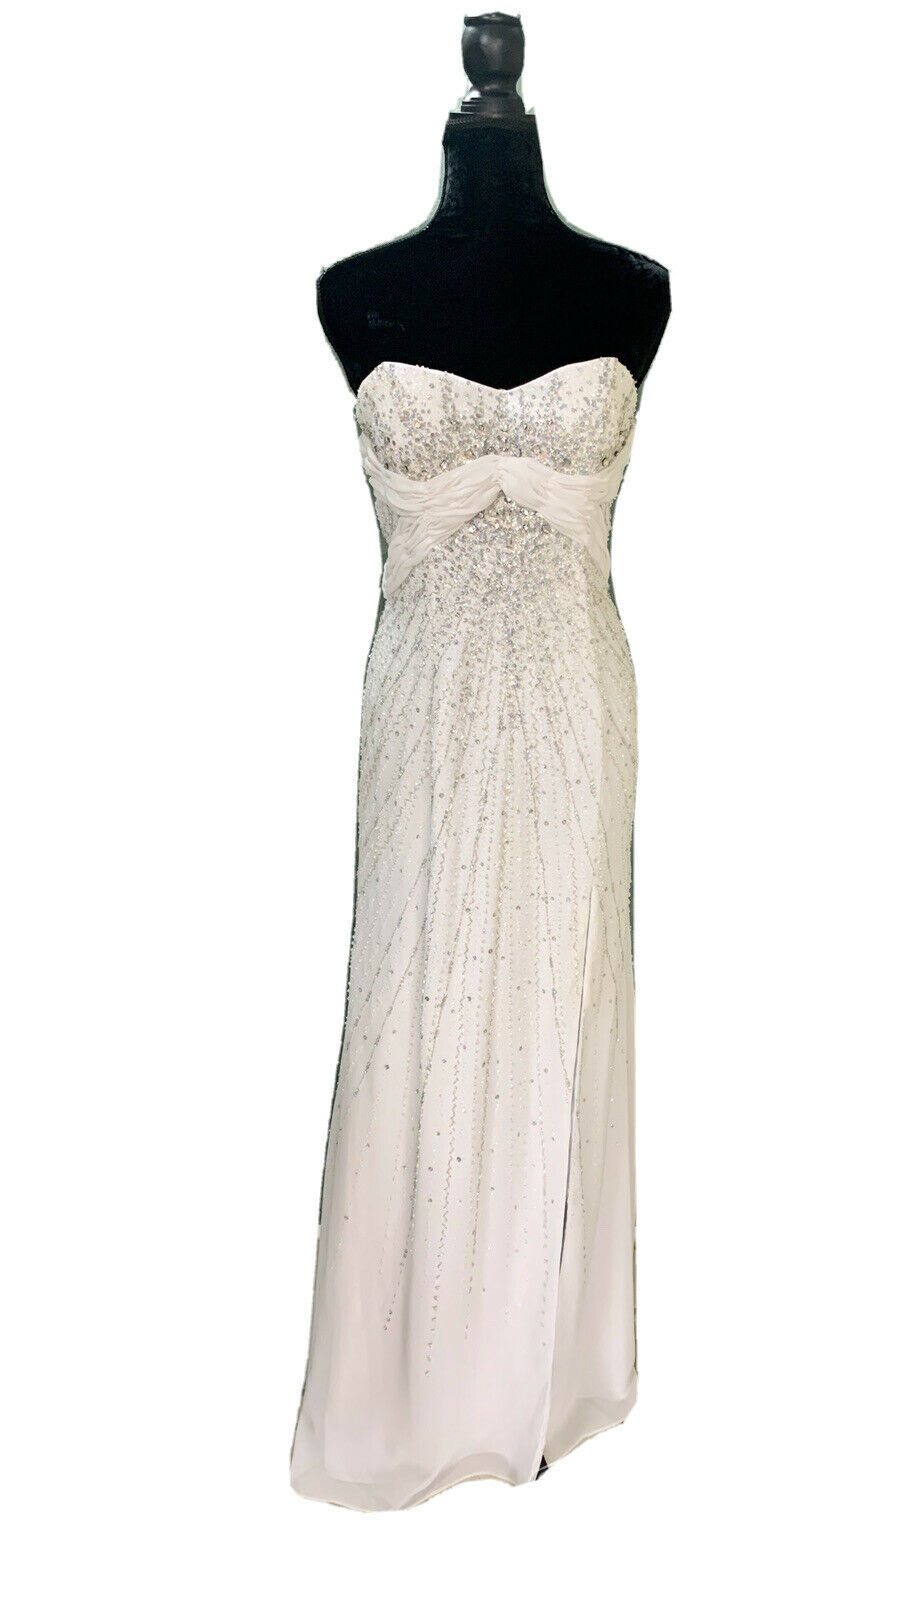 10 White Prom Party Homecoming Dance Pageant Formal Evening Gown Wedding Dress